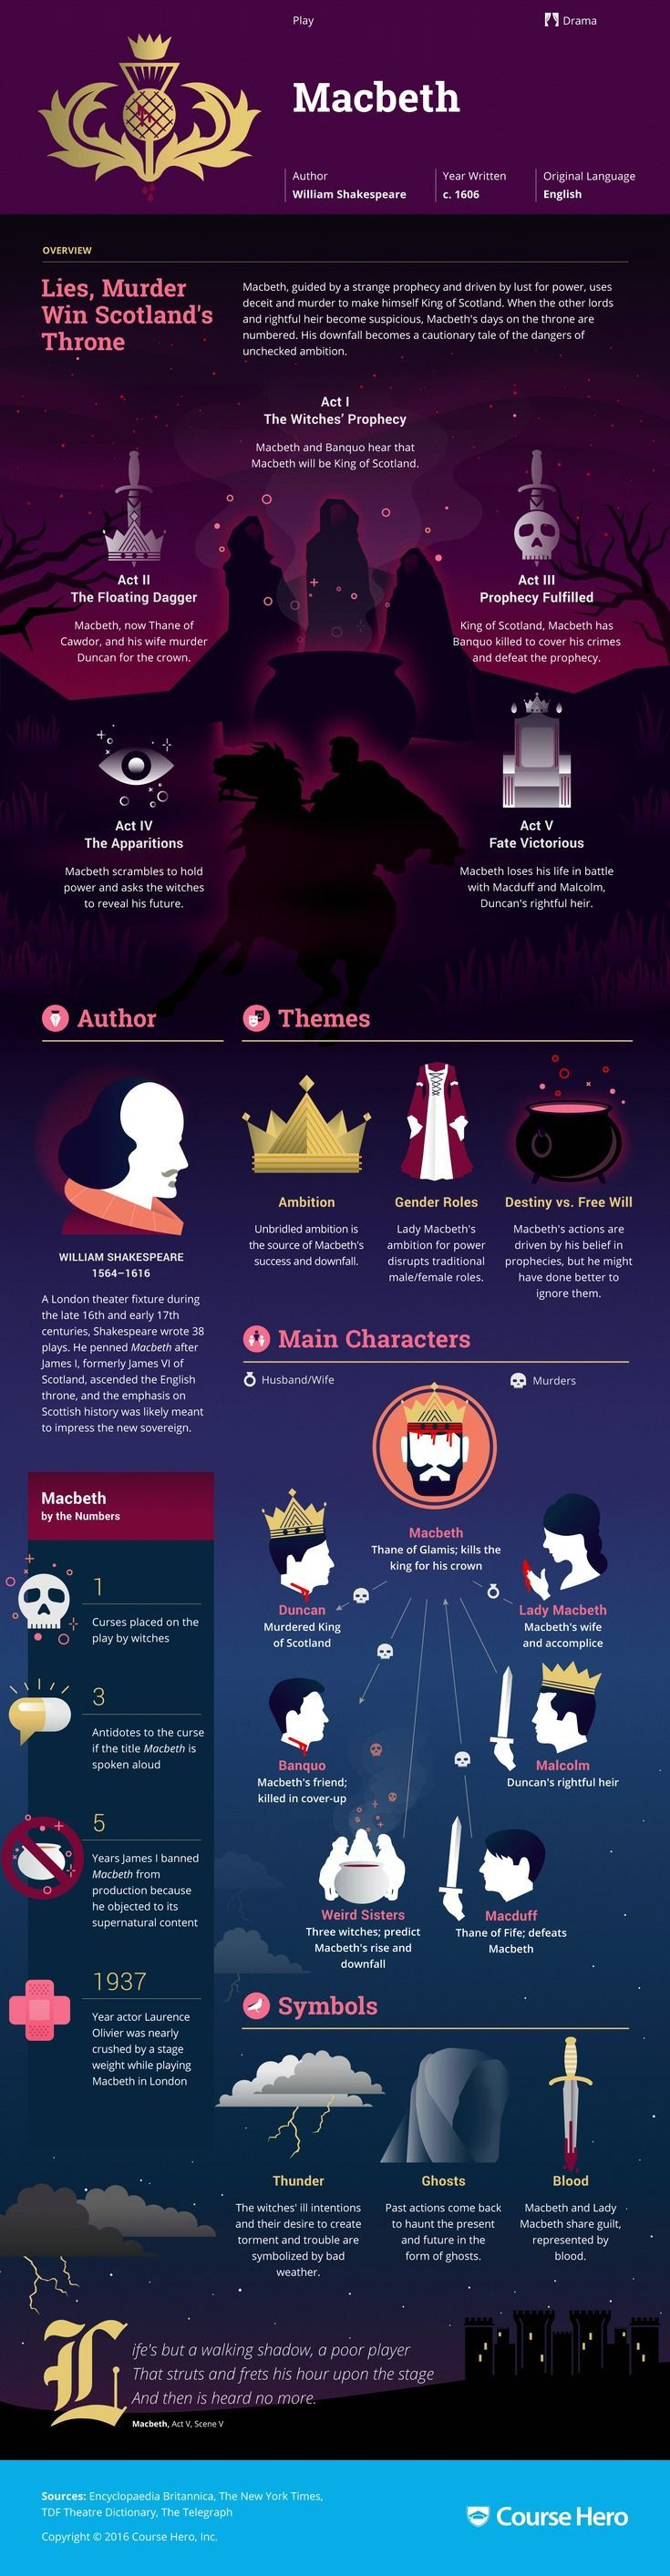 best ideas about macbeth summary macbeth themes this coursehero infographic on macbeth is both visually stunning and informative